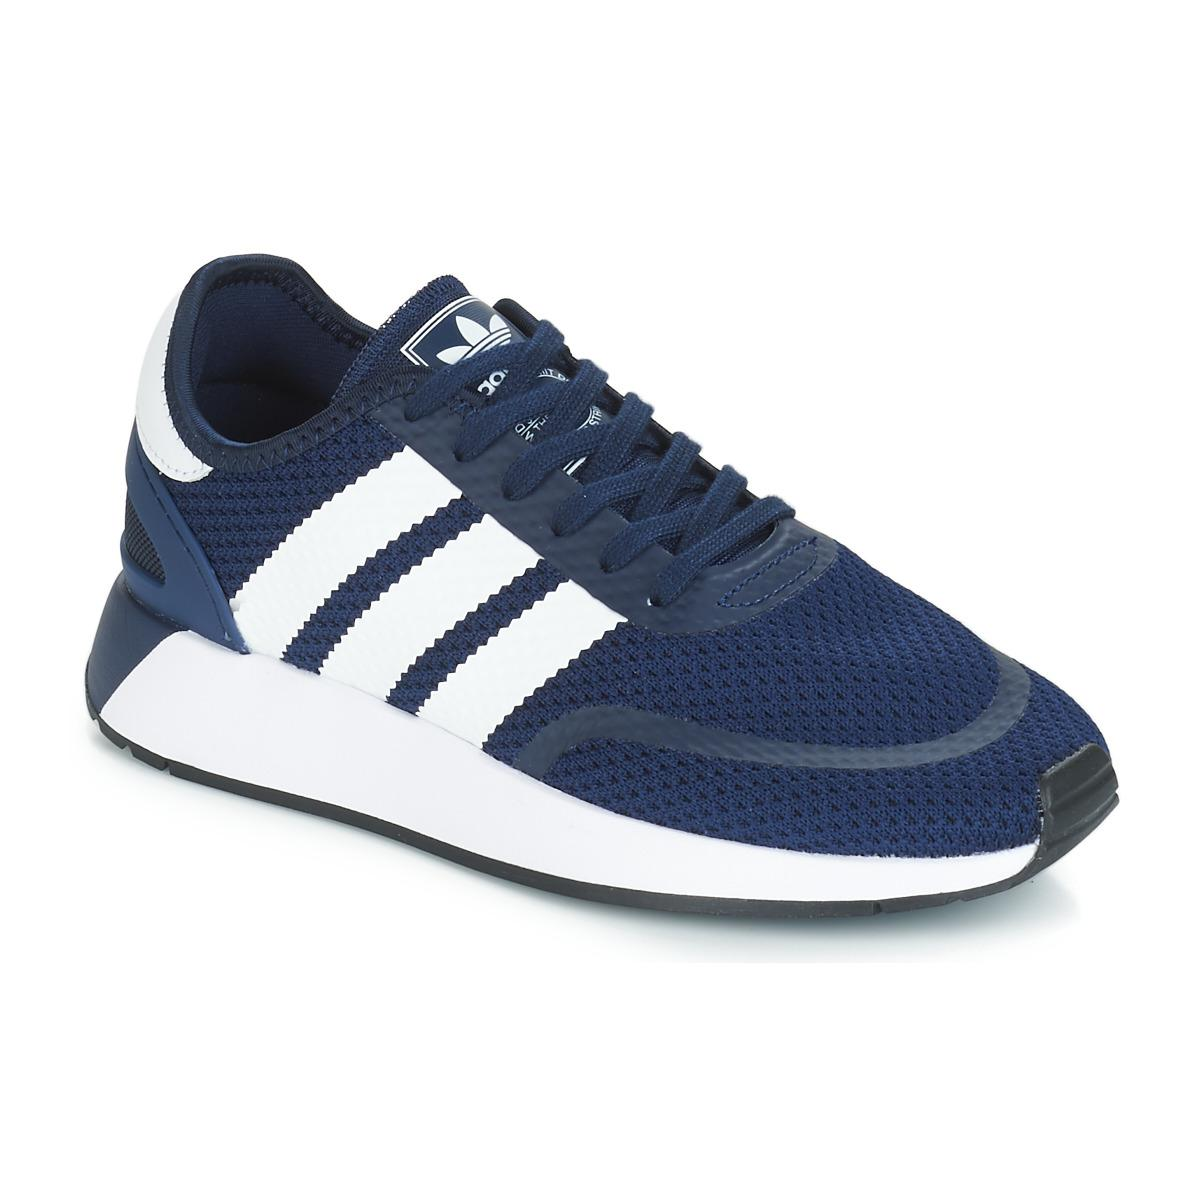 super popular 7b7ee 1f919 Adidas - N-5923 Men s Shoes (trainers) In Blue for Men - Lyst. View  fullscreen